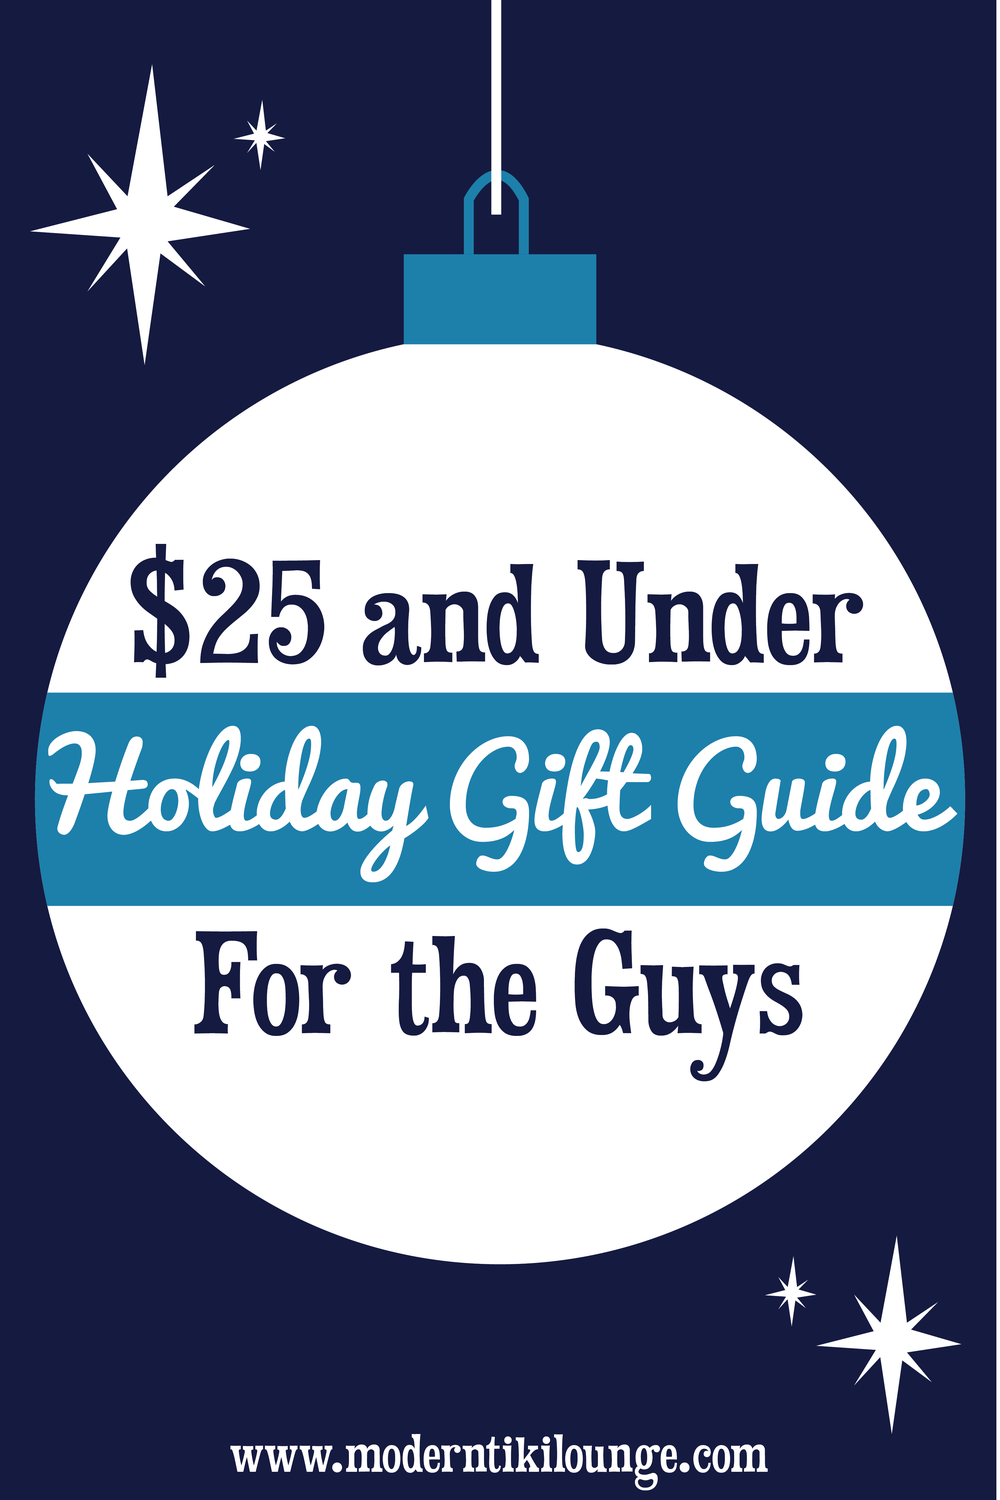 holiday-gift-guide-for-guys.jpg